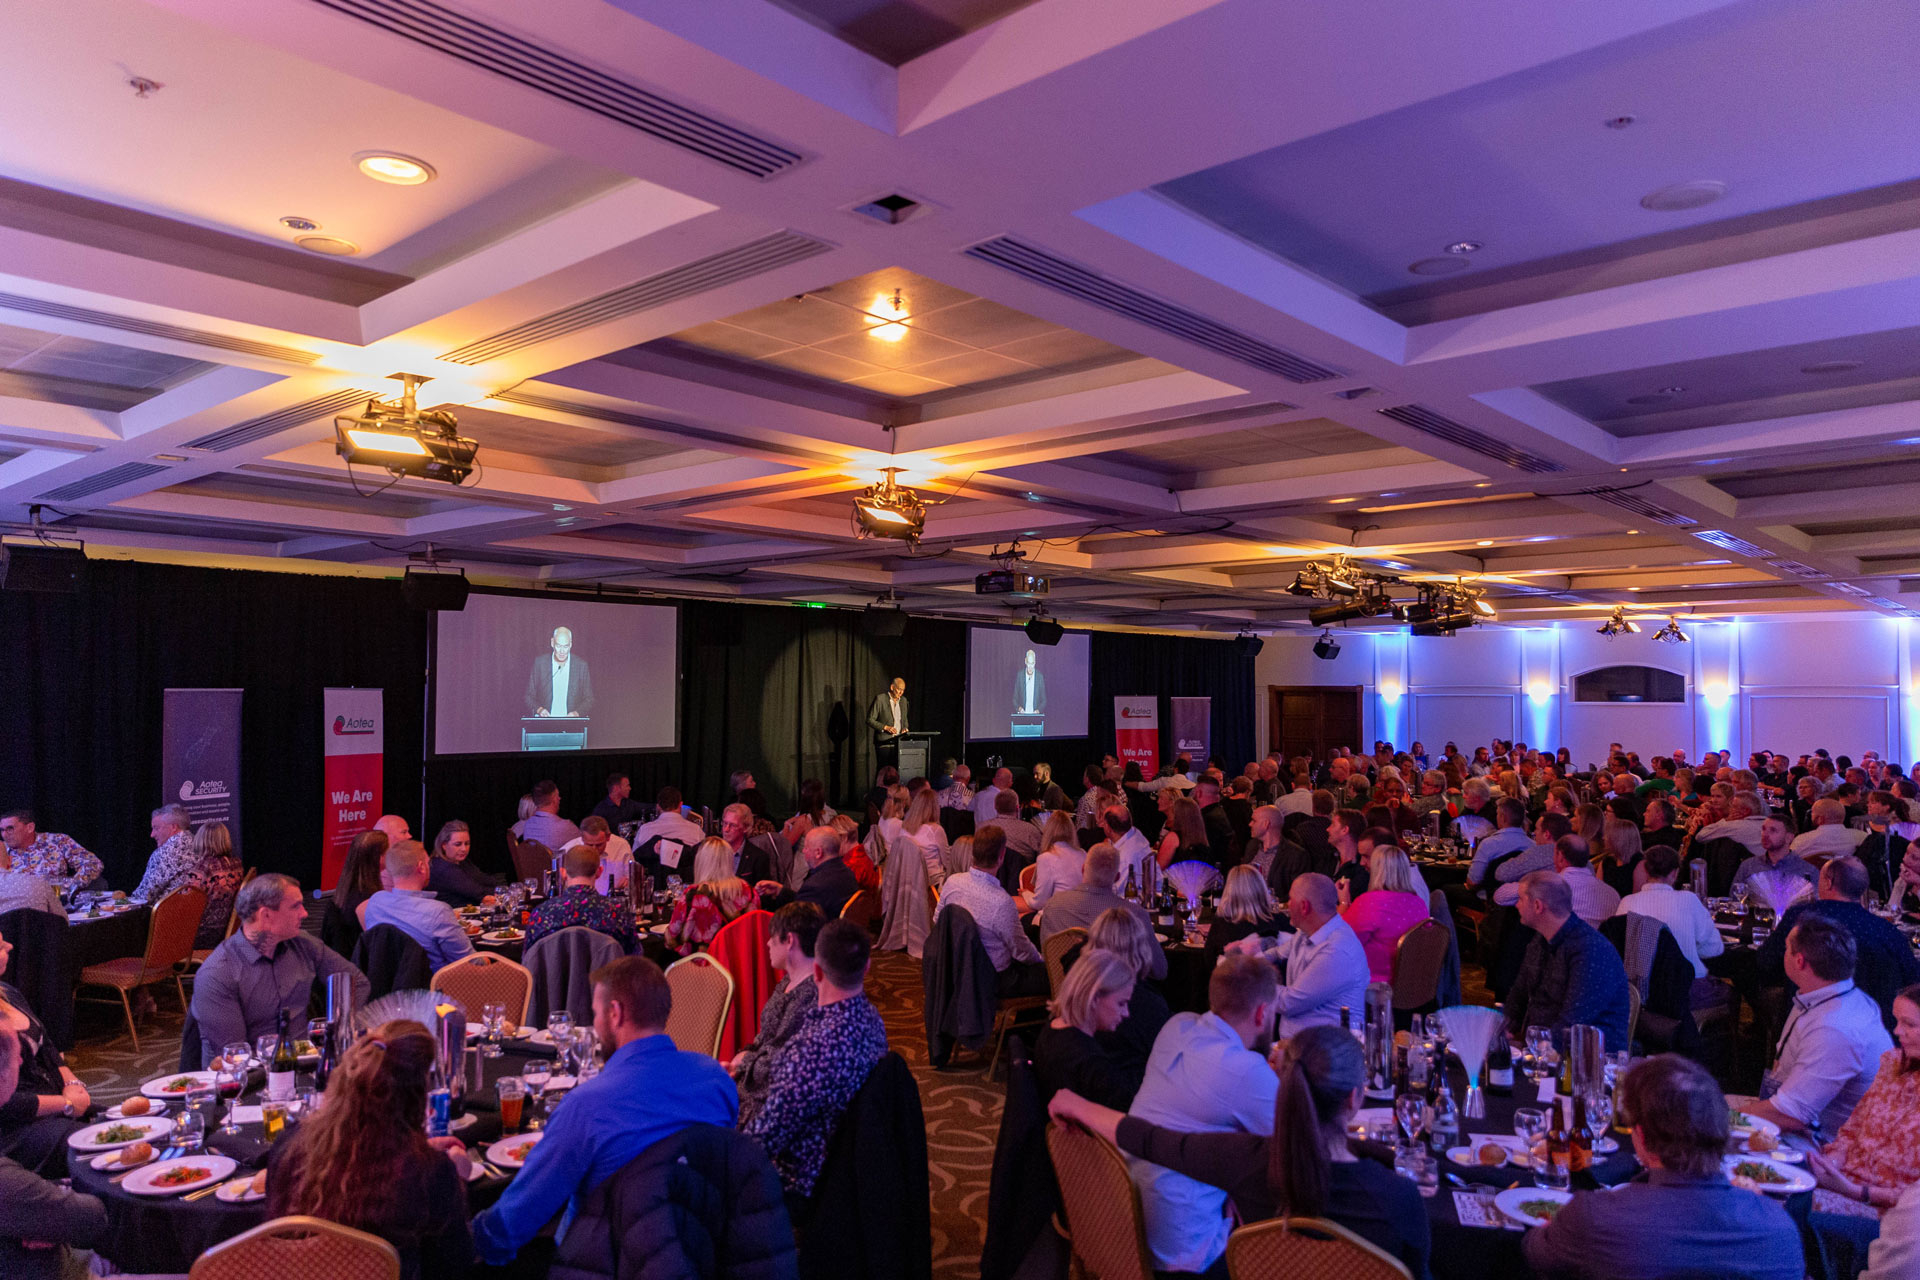 The 2021 Aotea Group Conference & AGM In Queenstown